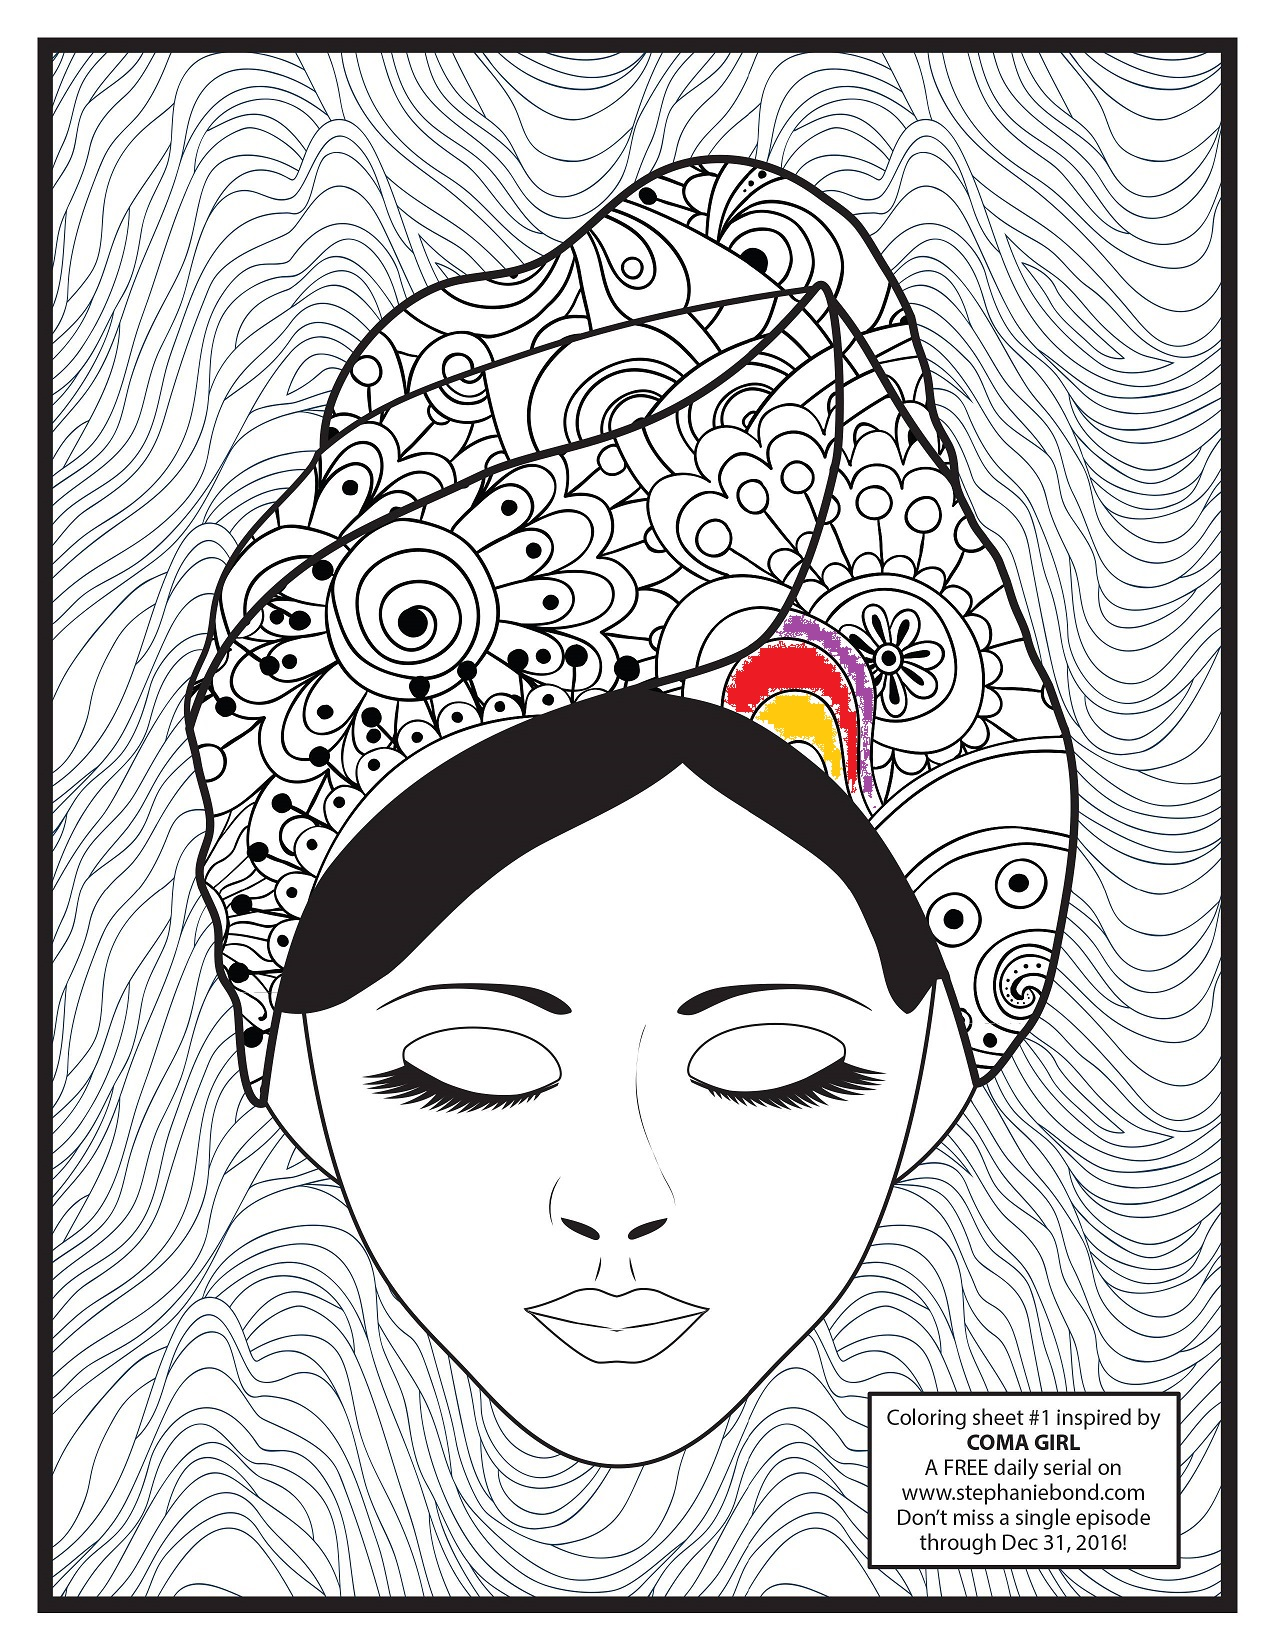 COMA GIRL coloring sheet 1 thumbnail-colored